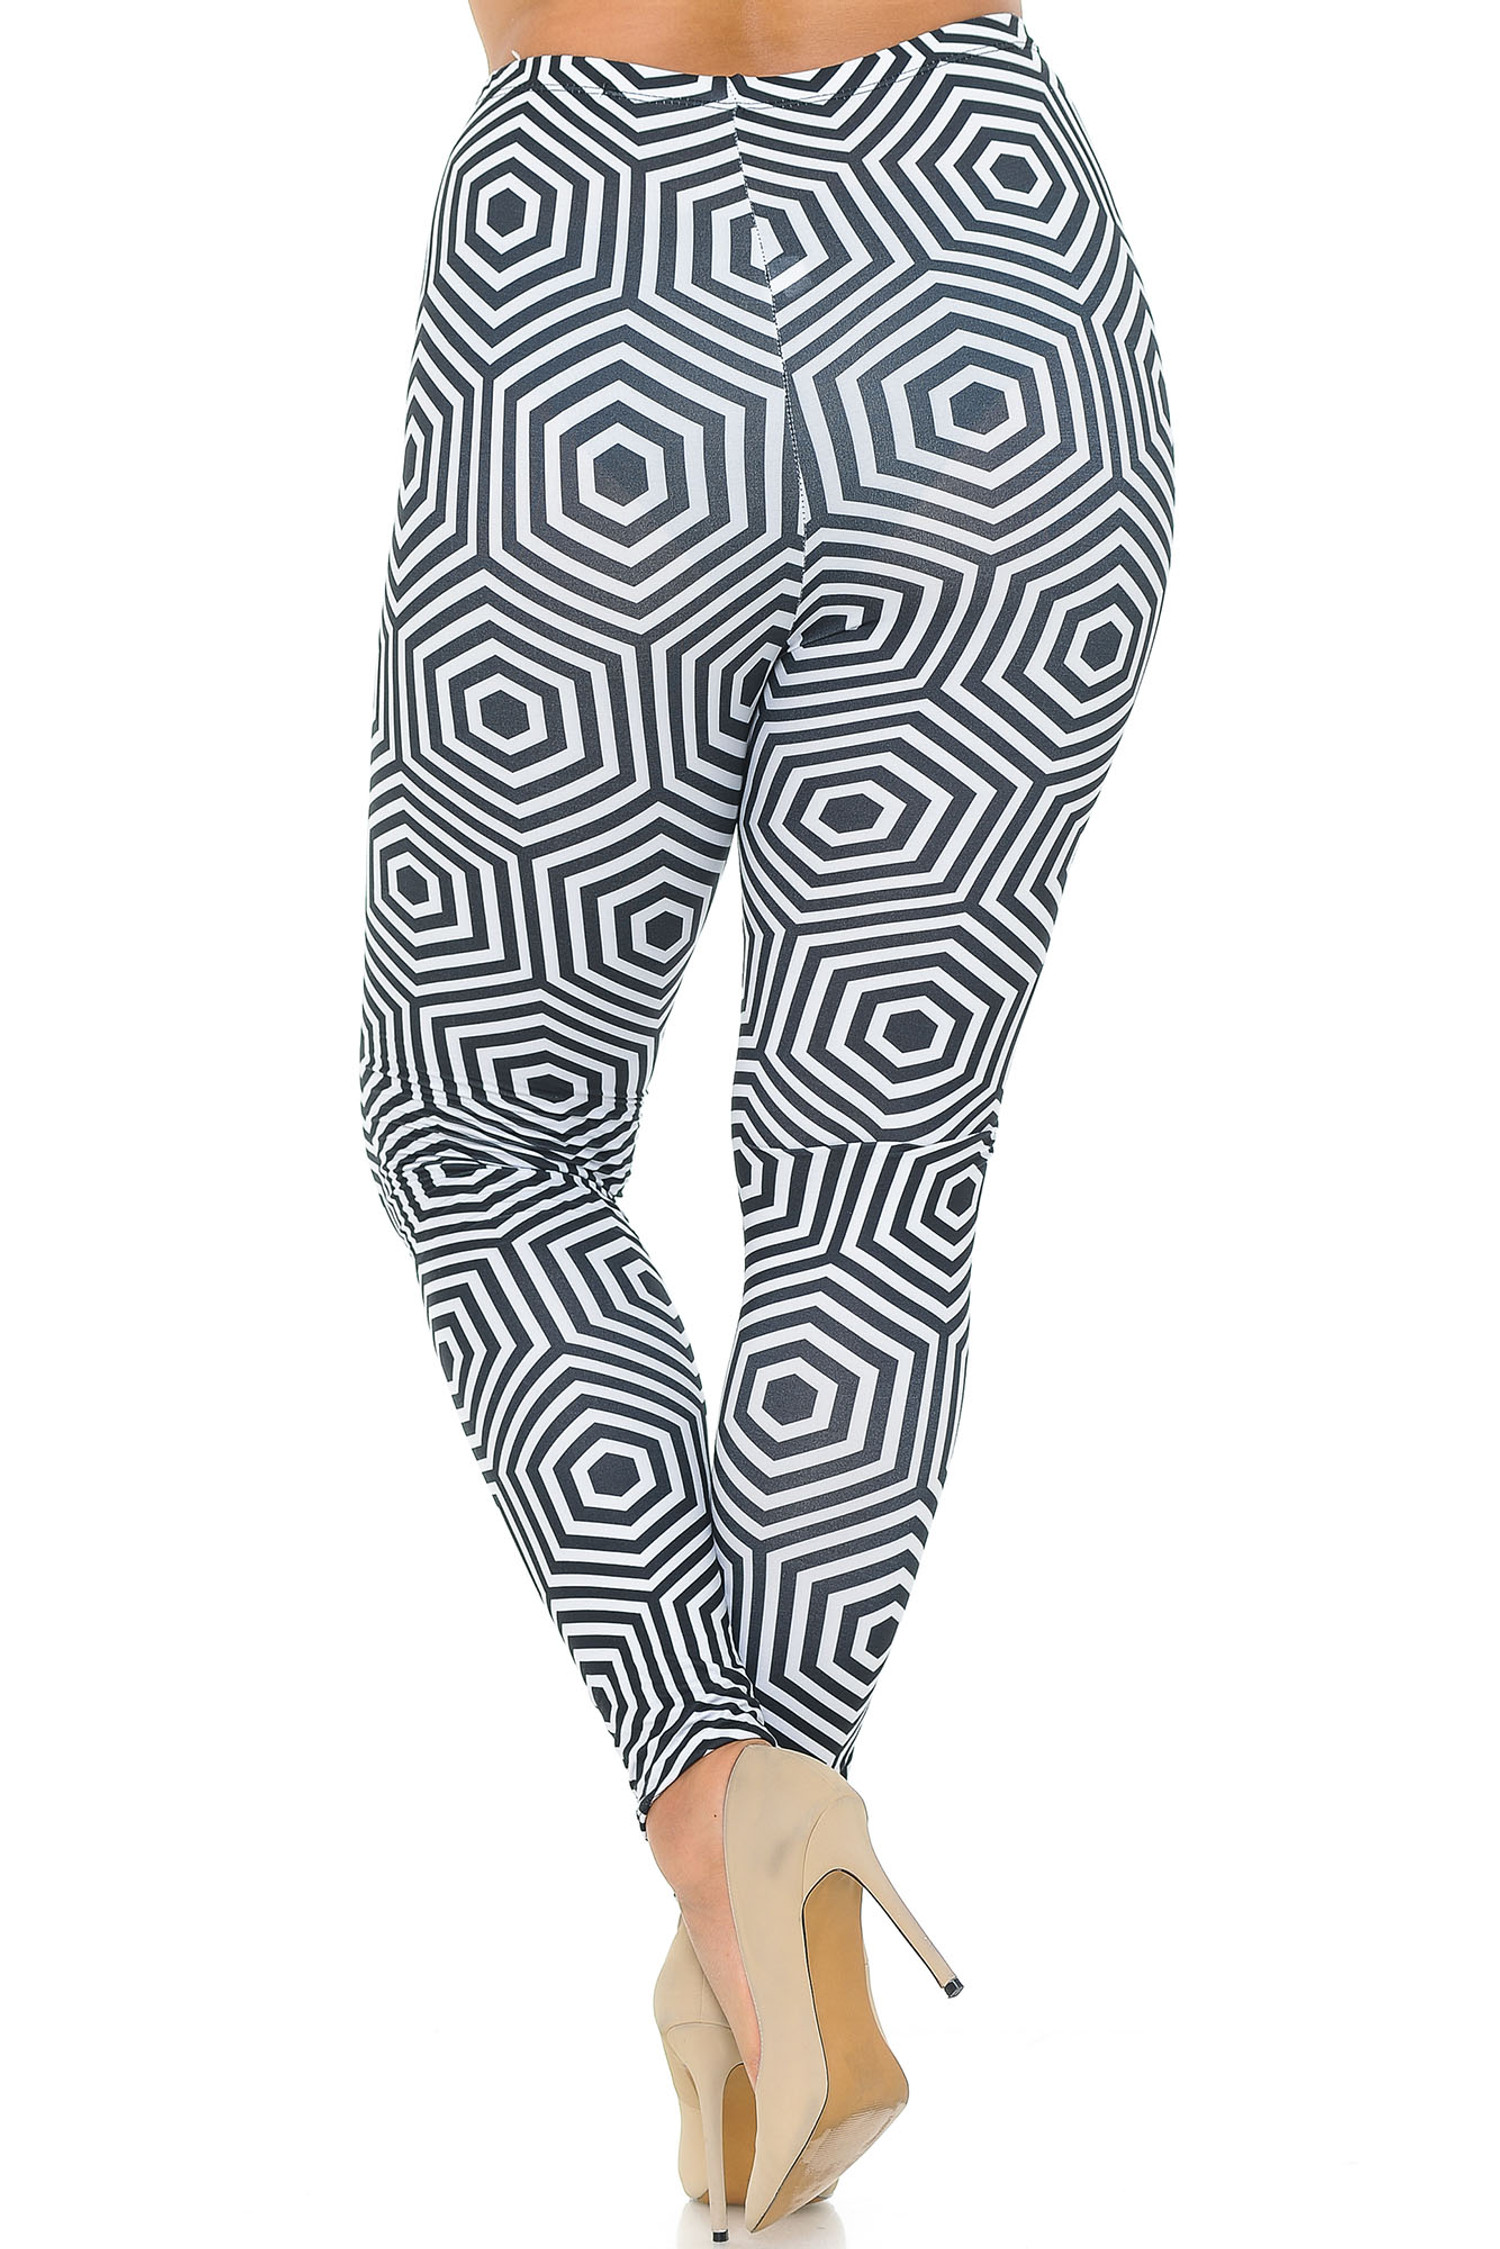 Double Brushed Hexagon Illusion Plus Size Leggings